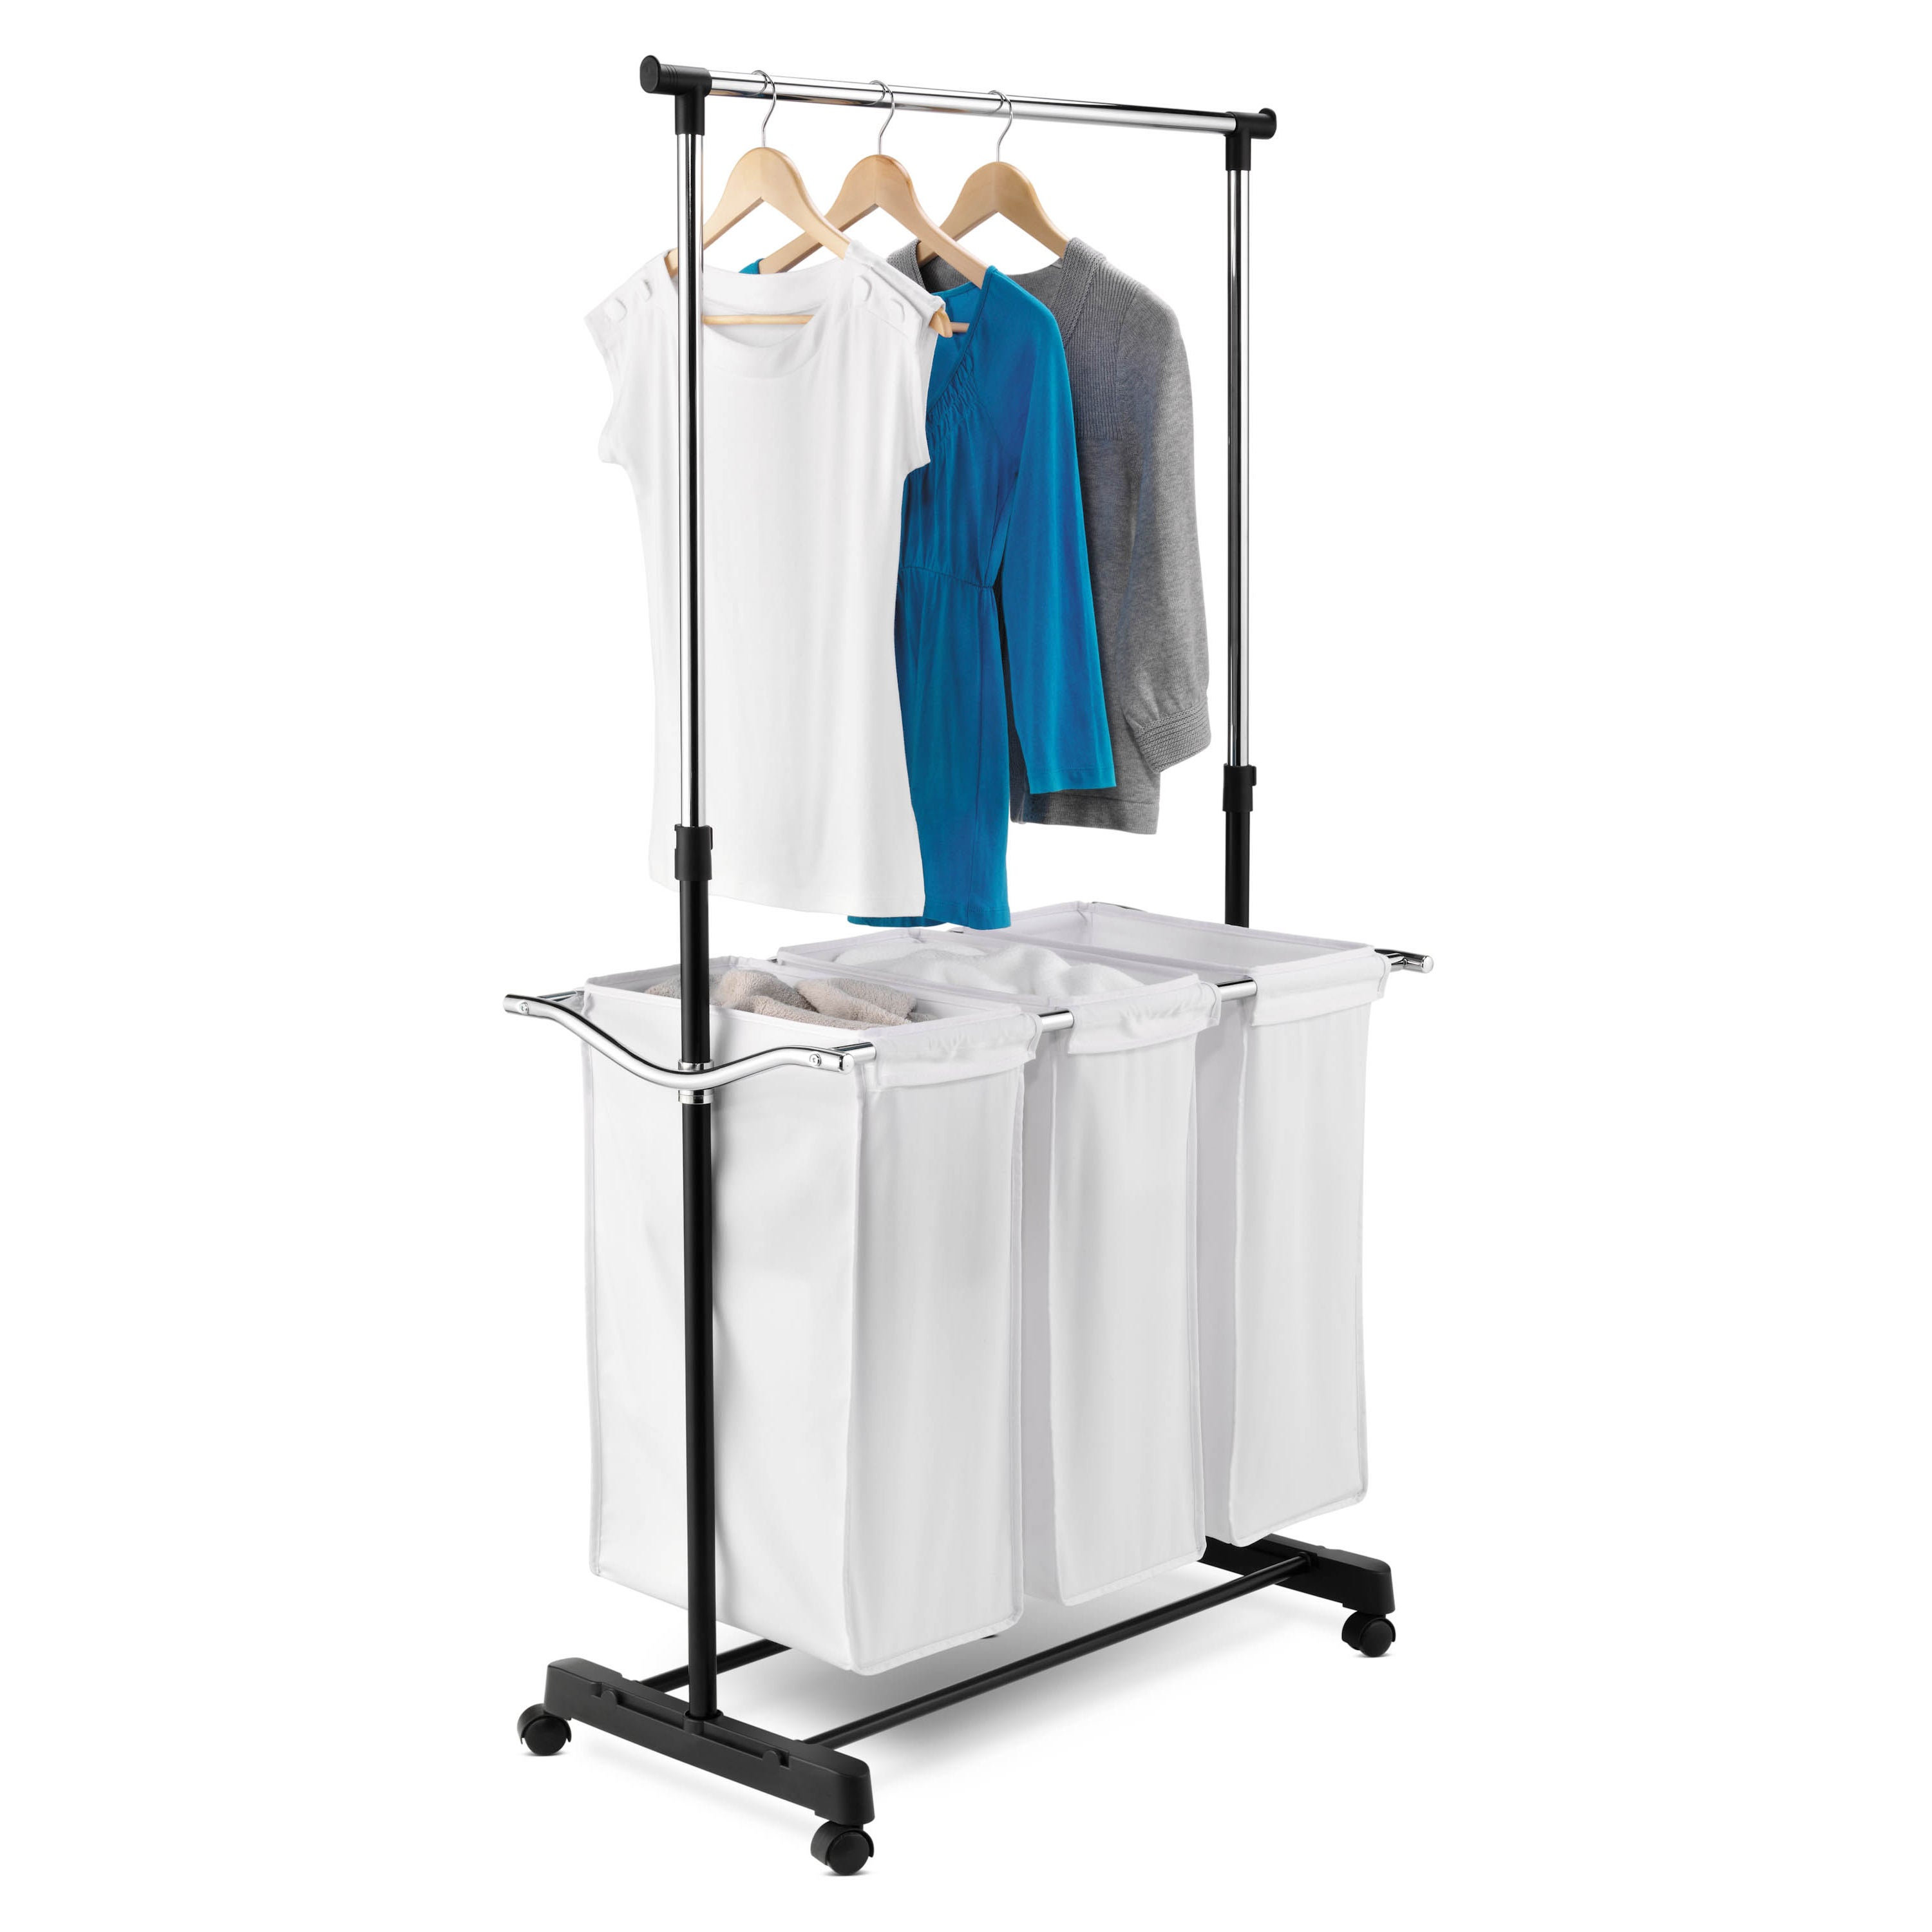 Triple Sorter Laundry Center with Hanging Bar at Sears.com